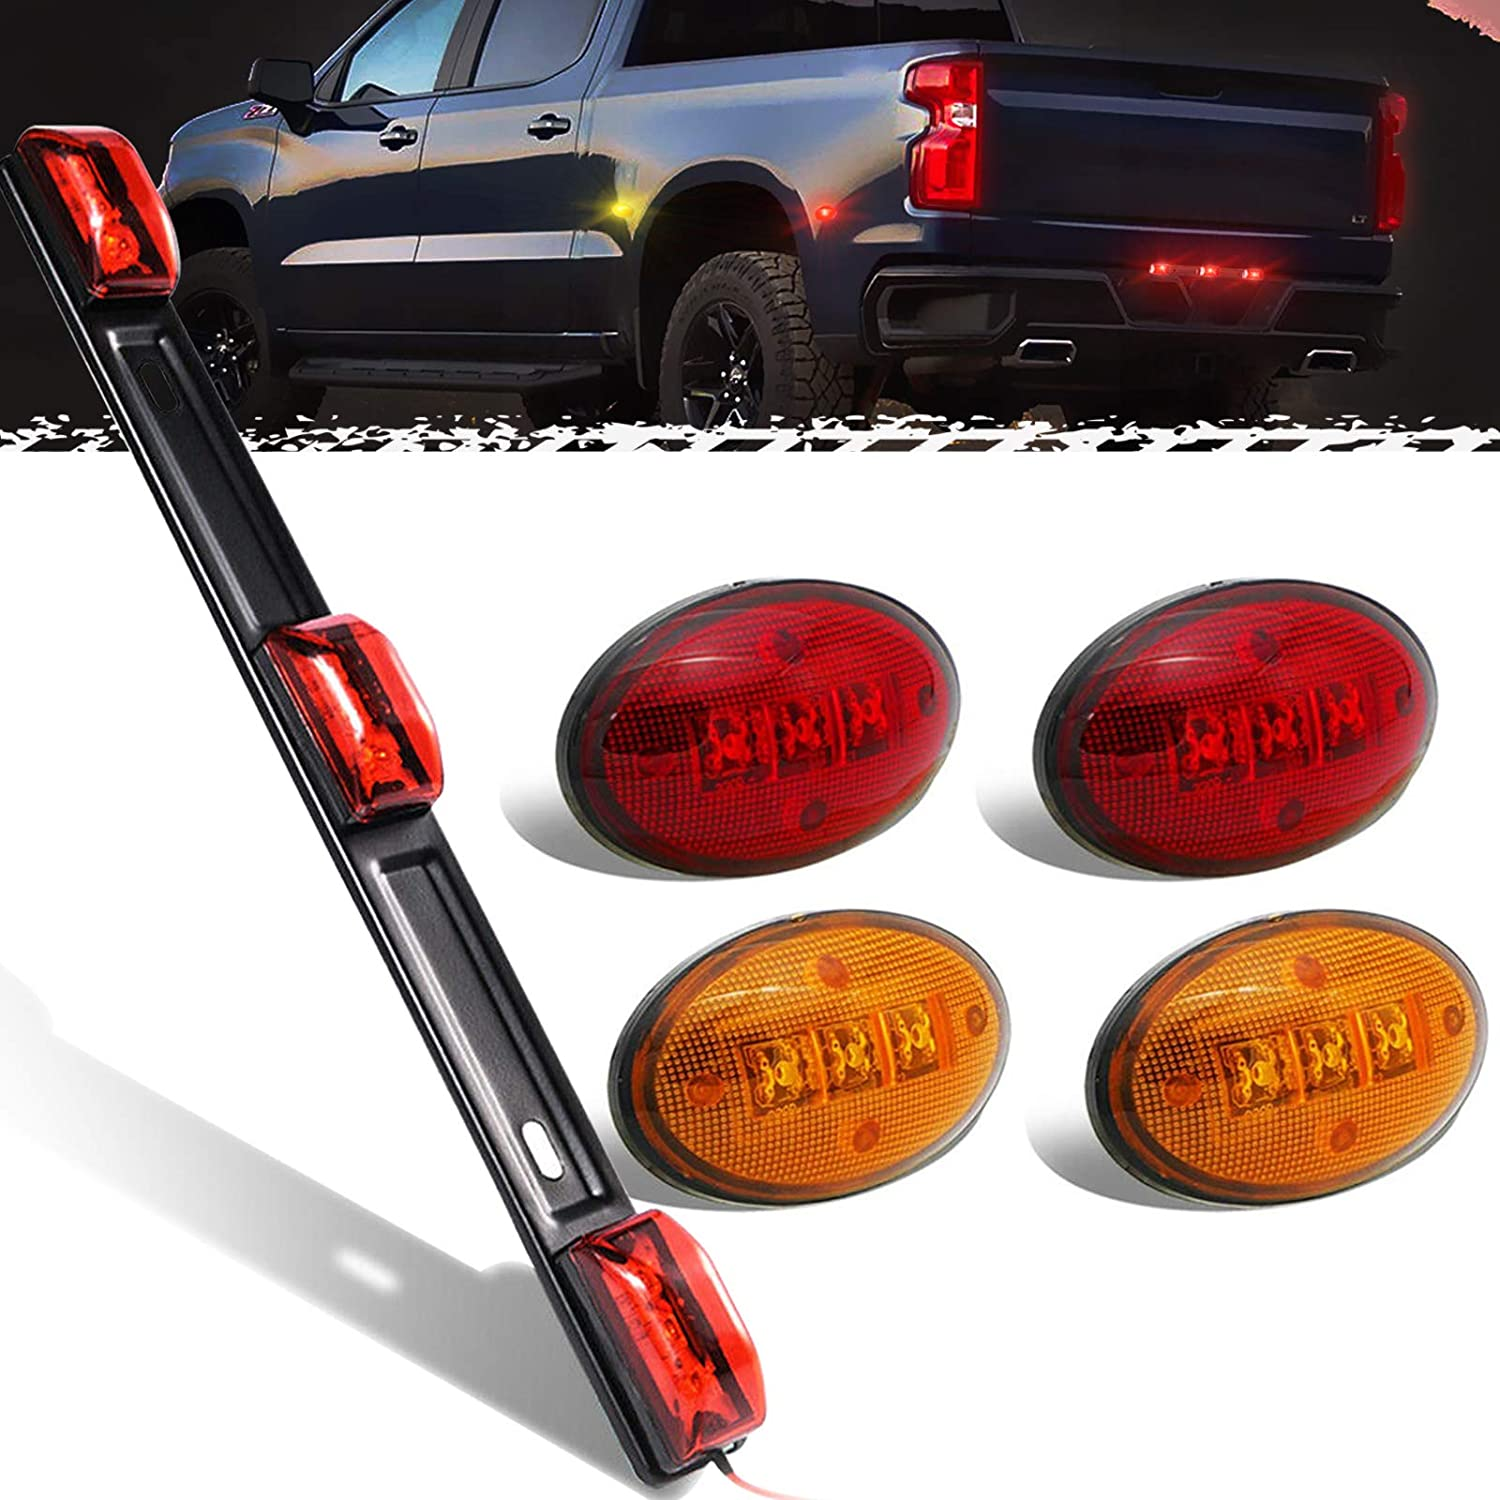 PSEQT 9 LED Identification ID Tail Lights /& 3 LED Side Marker Light Kits Waterproof for F150 F250 and All 1999-2010 Ford F350 F450 F550